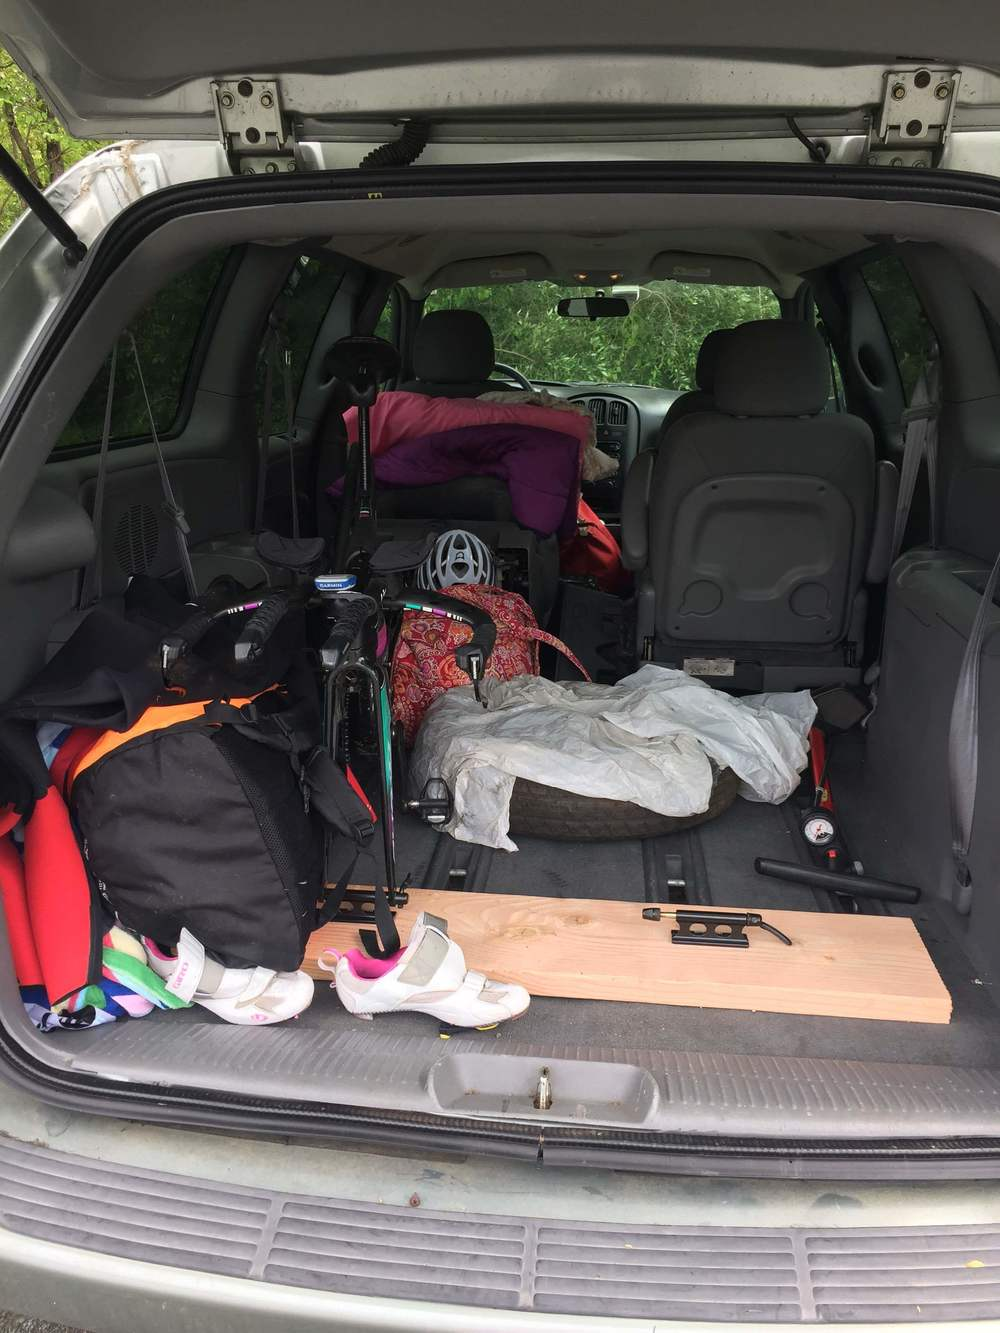 Triathlon: a minimalist sport. Good thing I drive a minivan to fit all of the stuff I need for a weekend at a race.